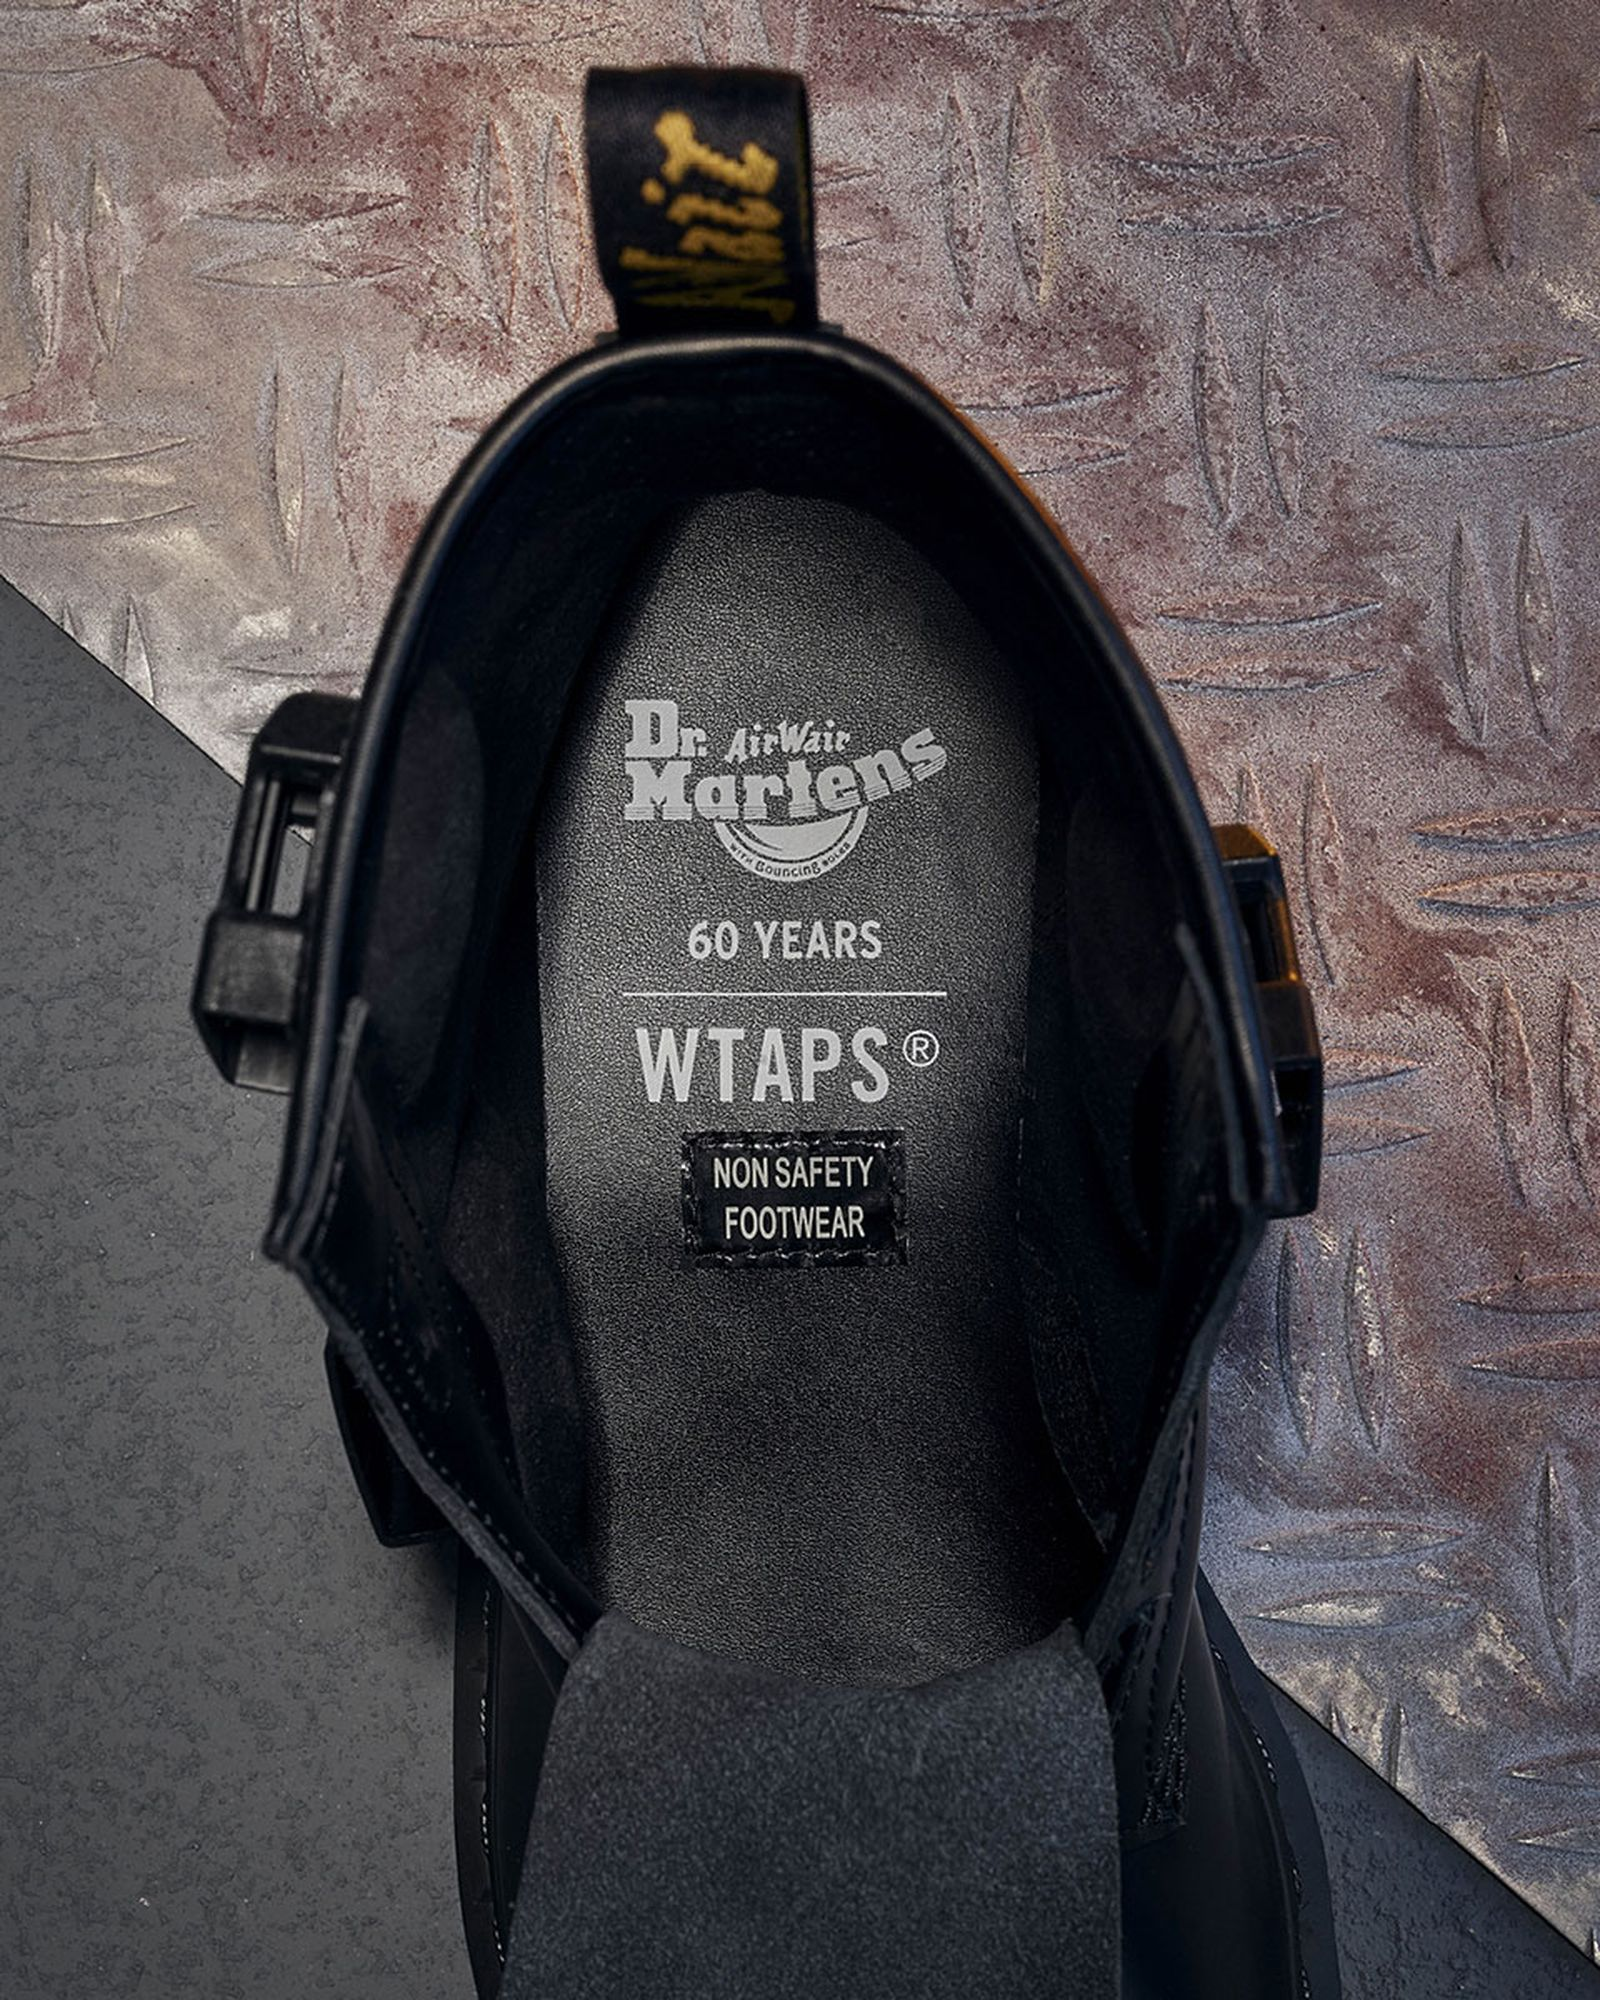 wtaps-dr-martens-1460-remastered-release-date-price-06